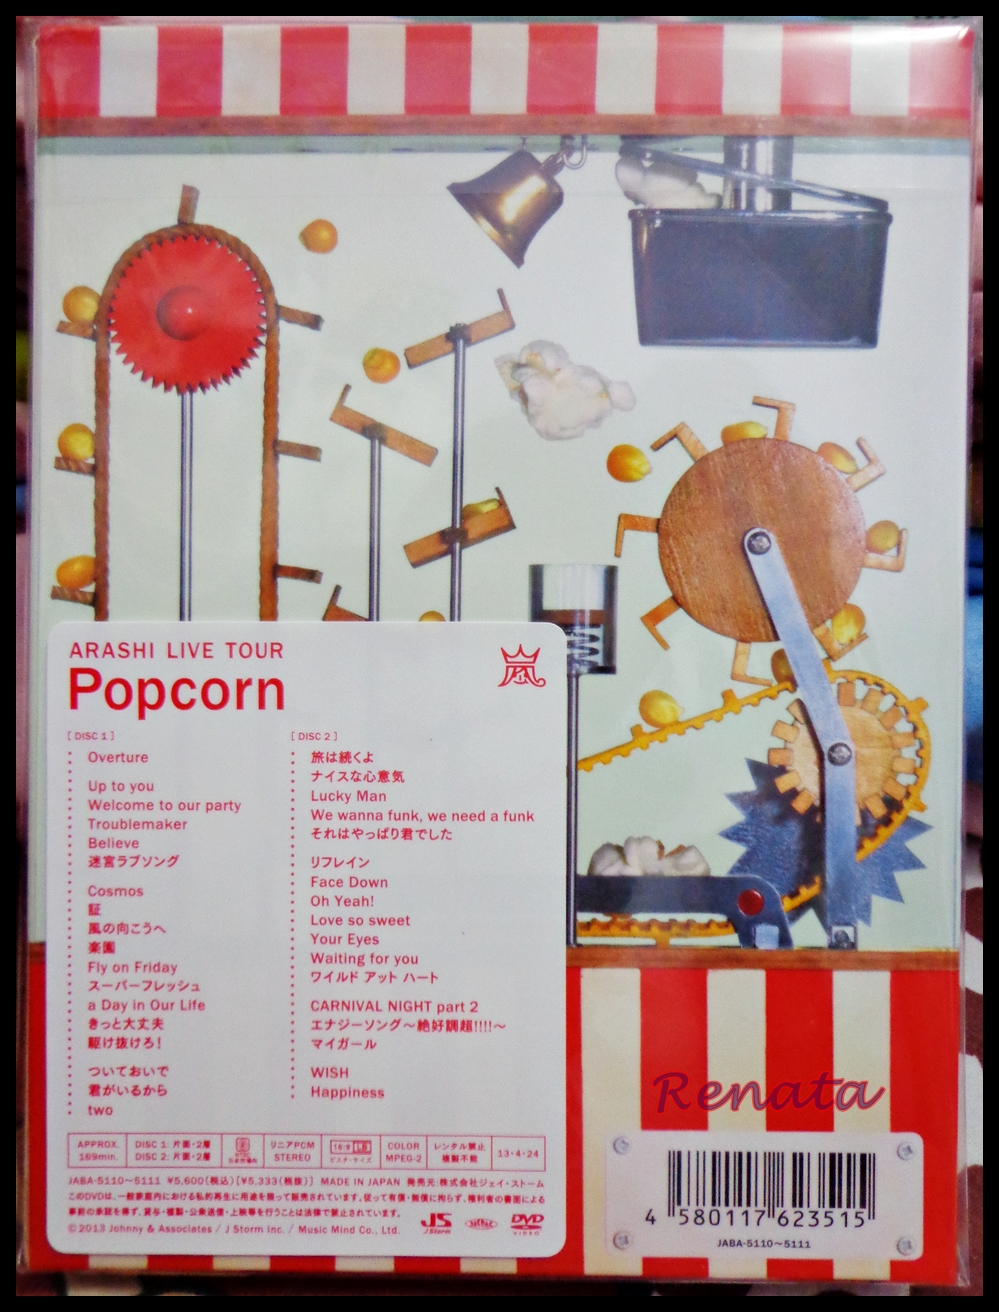 My Popcorn DVD - Let share happiness